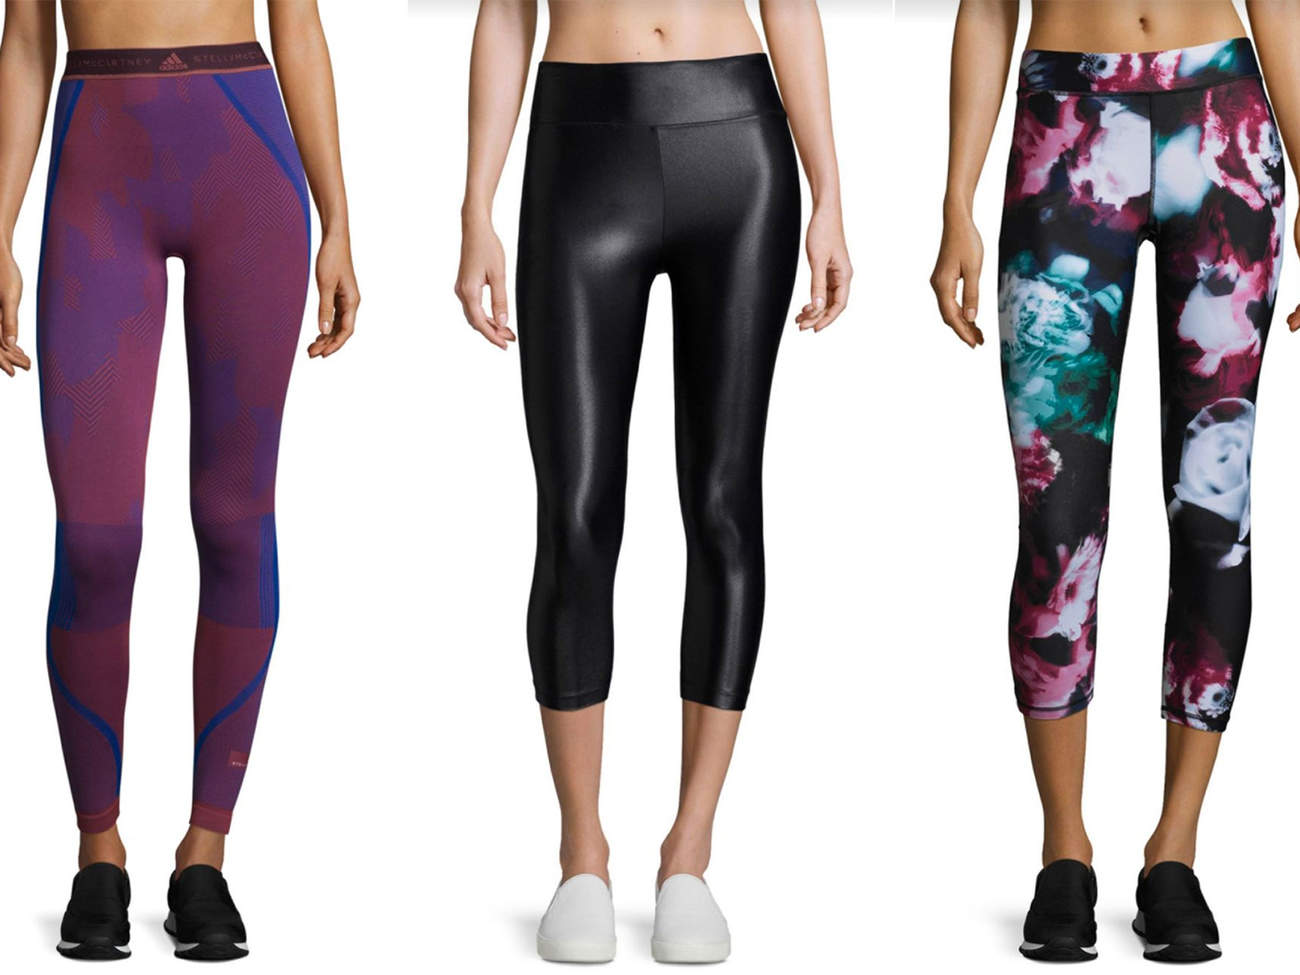 Shoppng: The 7 Best Workout Leggings to Buy from Saks Fifth Avenue's Friends and Family Sale